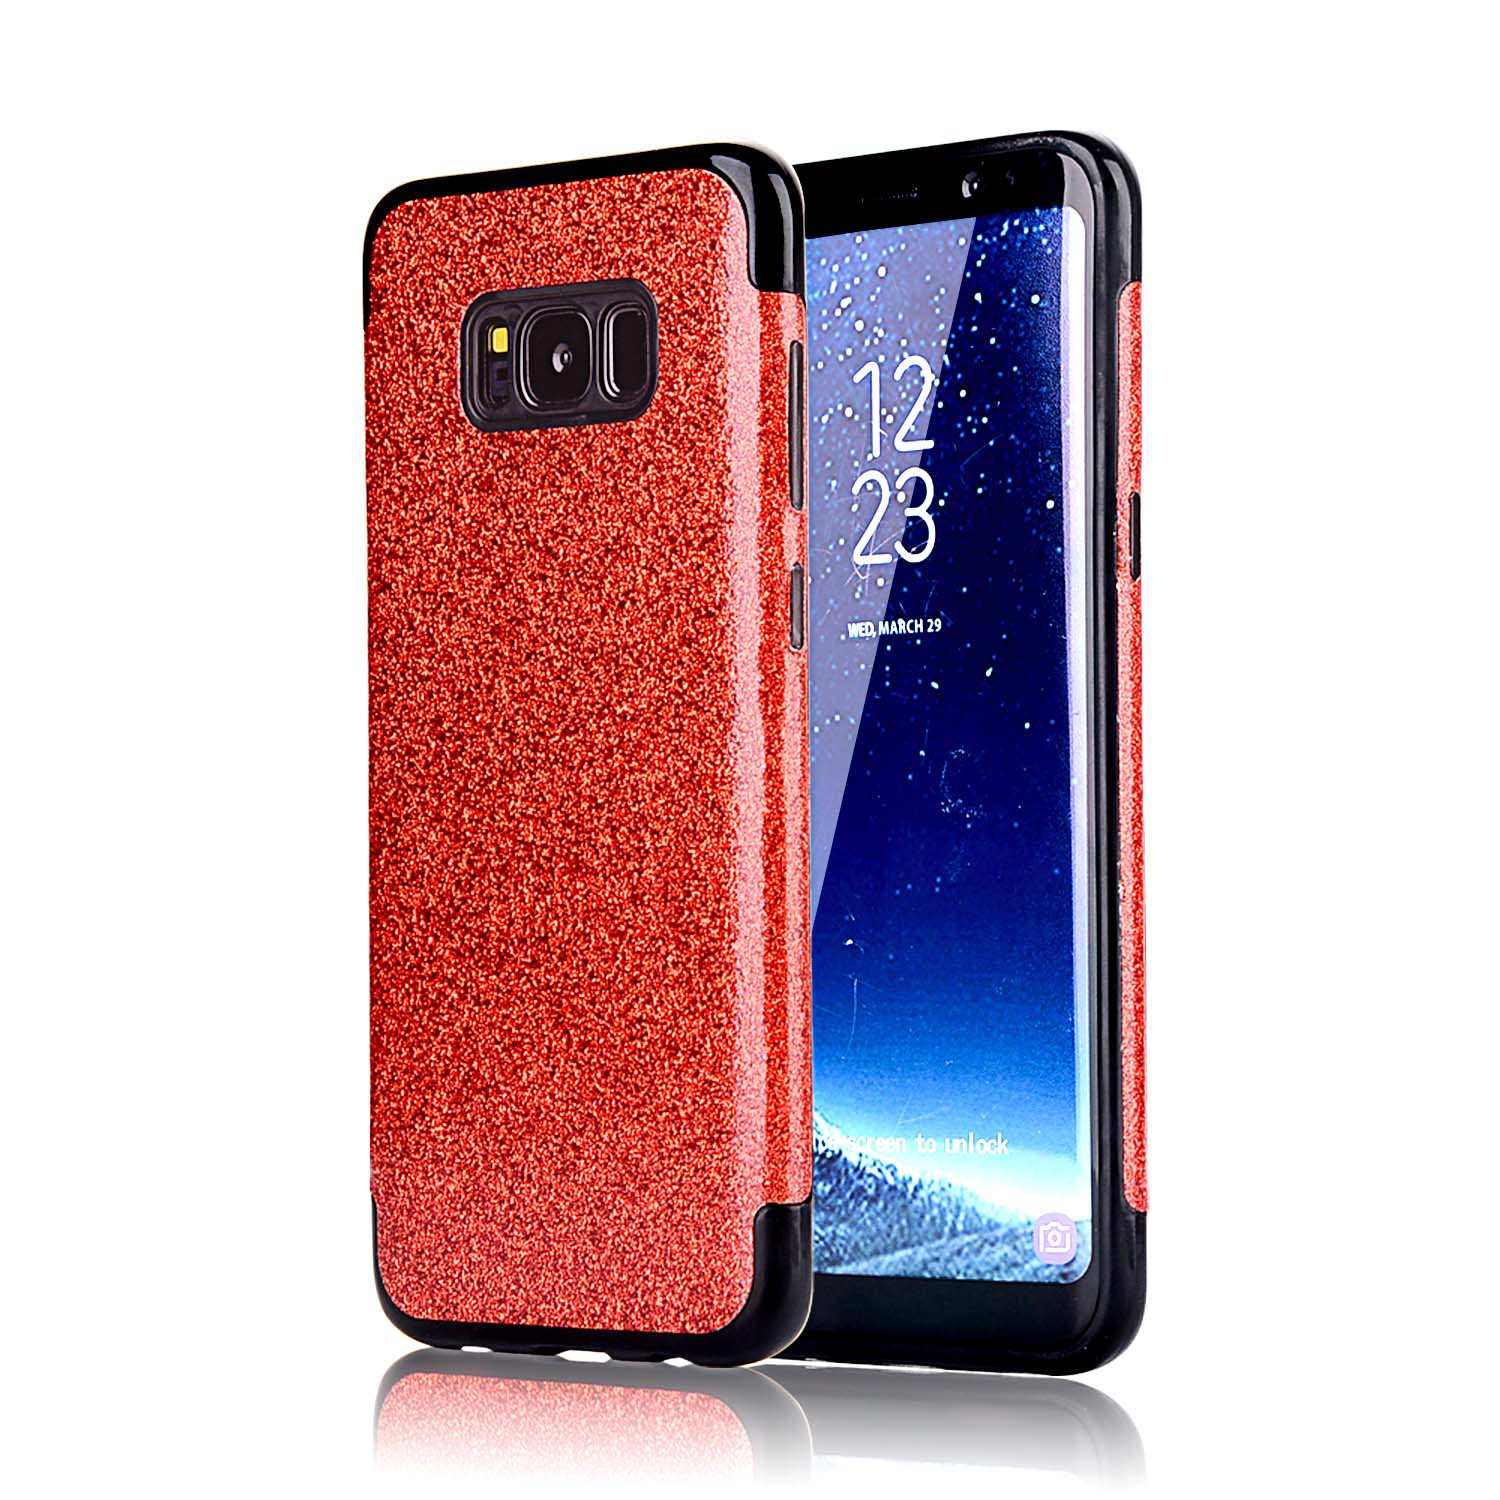 fr samsung galaxy s8 s7 s6 glitter silicone soft tpu bling. Black Bedroom Furniture Sets. Home Design Ideas